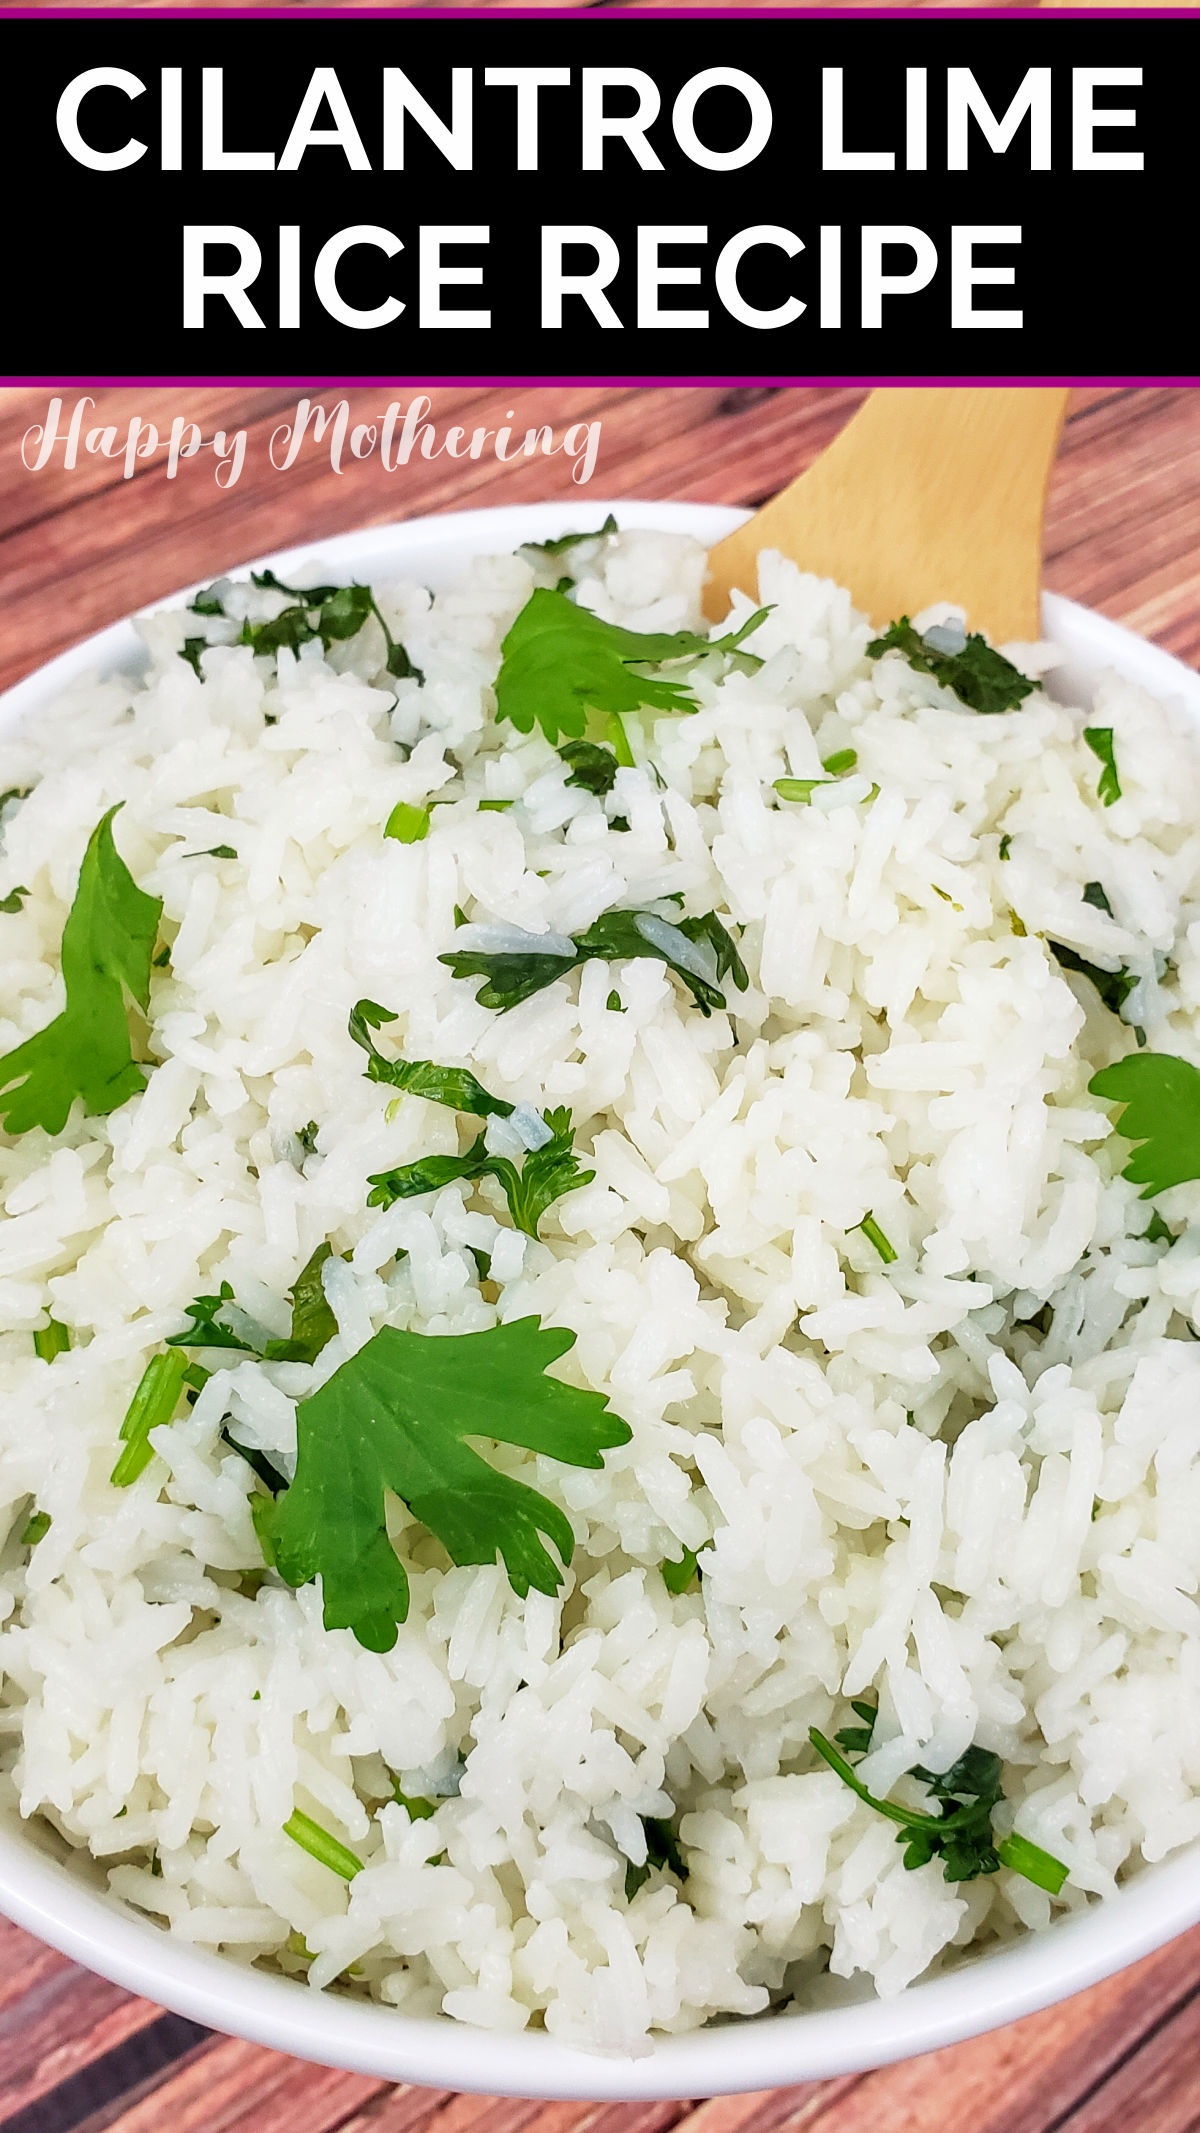 Cilantro Lime Rice being served in a bowl with bamboo spatula.